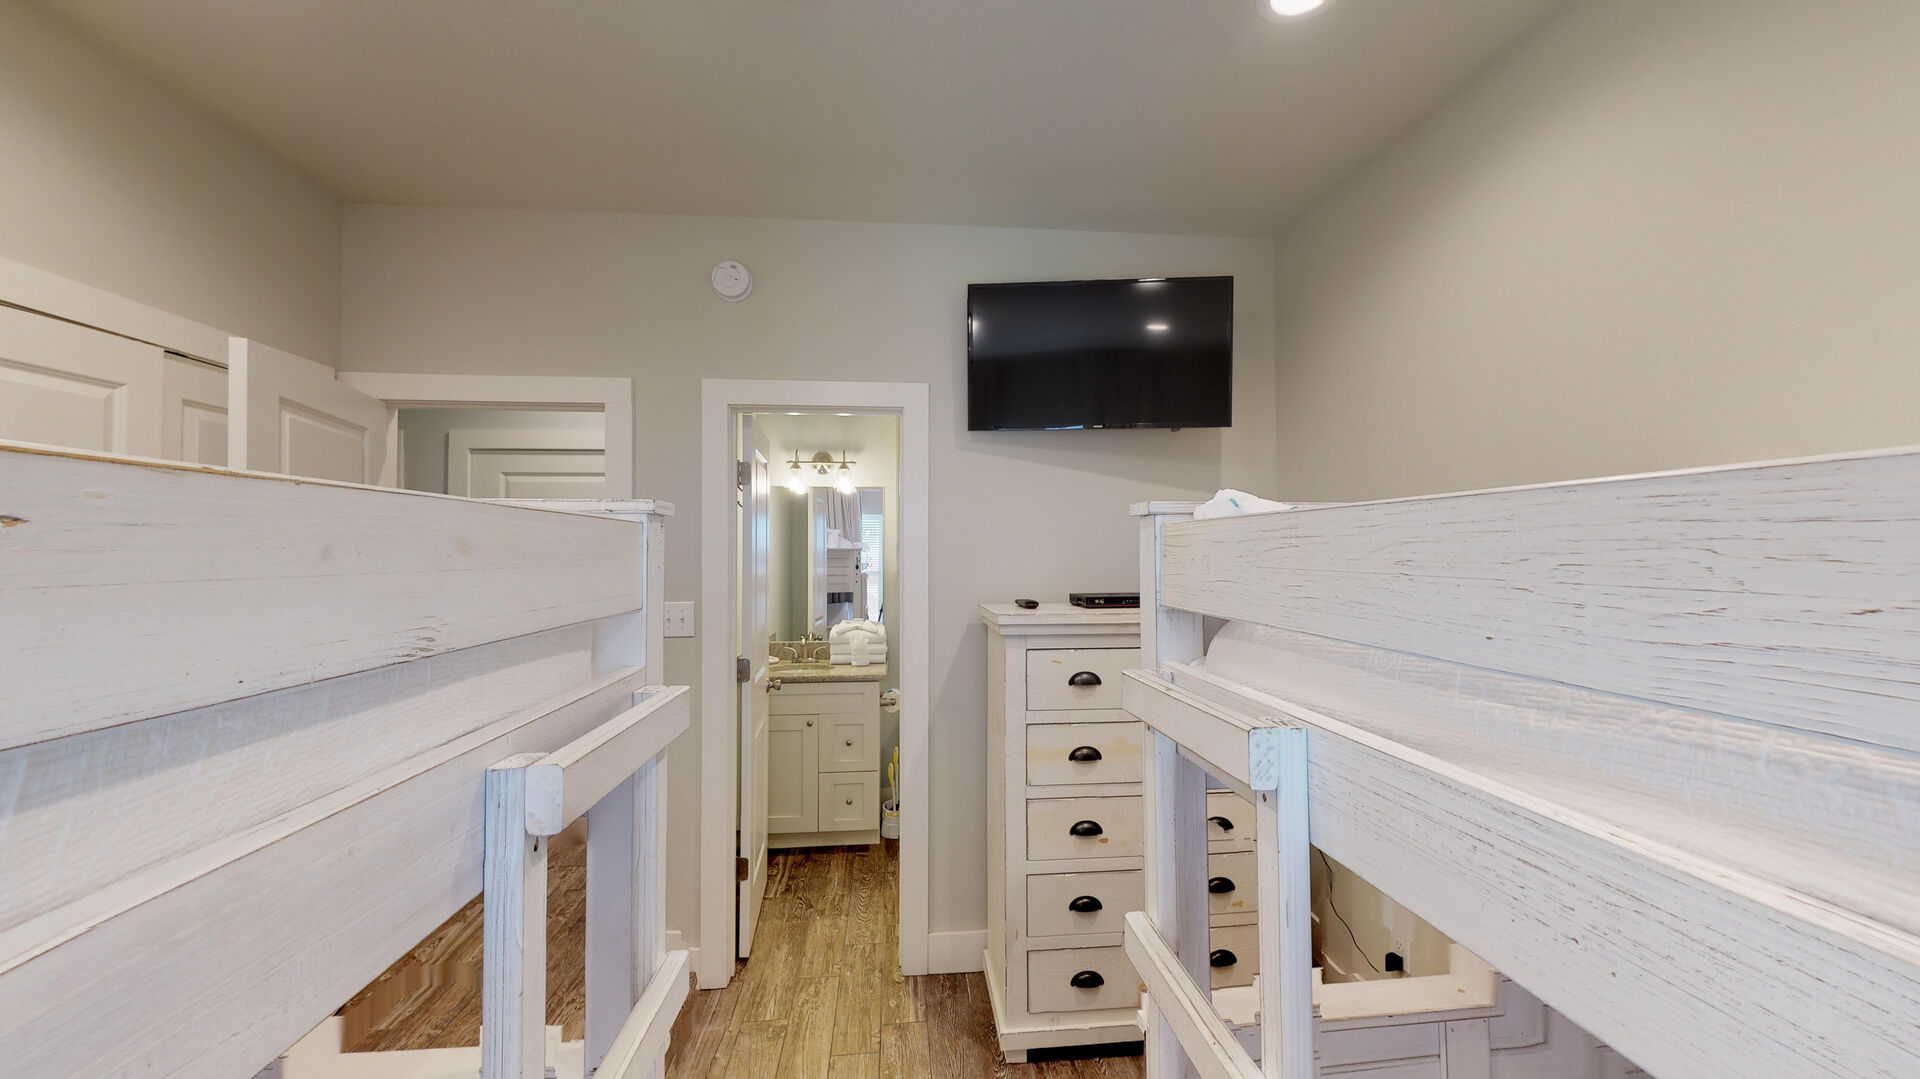 Bedroom 4 has 2 sets of bunks to sleep 6 (full set and twin set)